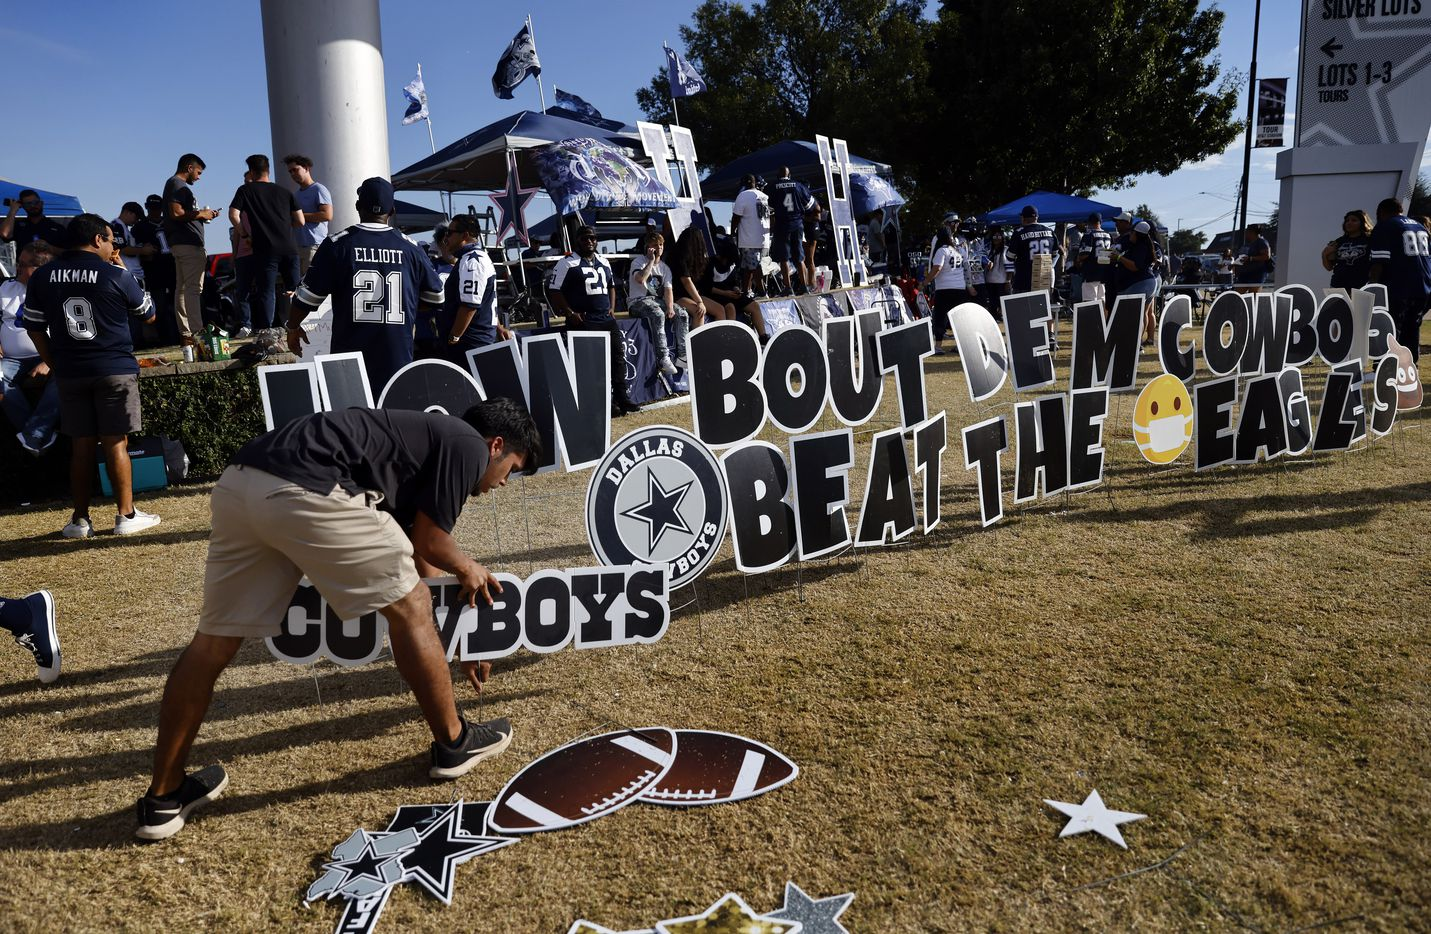 Dallas Cowboys fan Alex Perez of Dallas constructs a game day 'yard sign' display outside of AT&T Stadium in Arlington, Monday, September 27, 2021. He says he puts one up for every home opener. This one reads, How Bout Dem Cowboys, Beat The Eagles'. (Tom Fox/The Dallas Morning News)